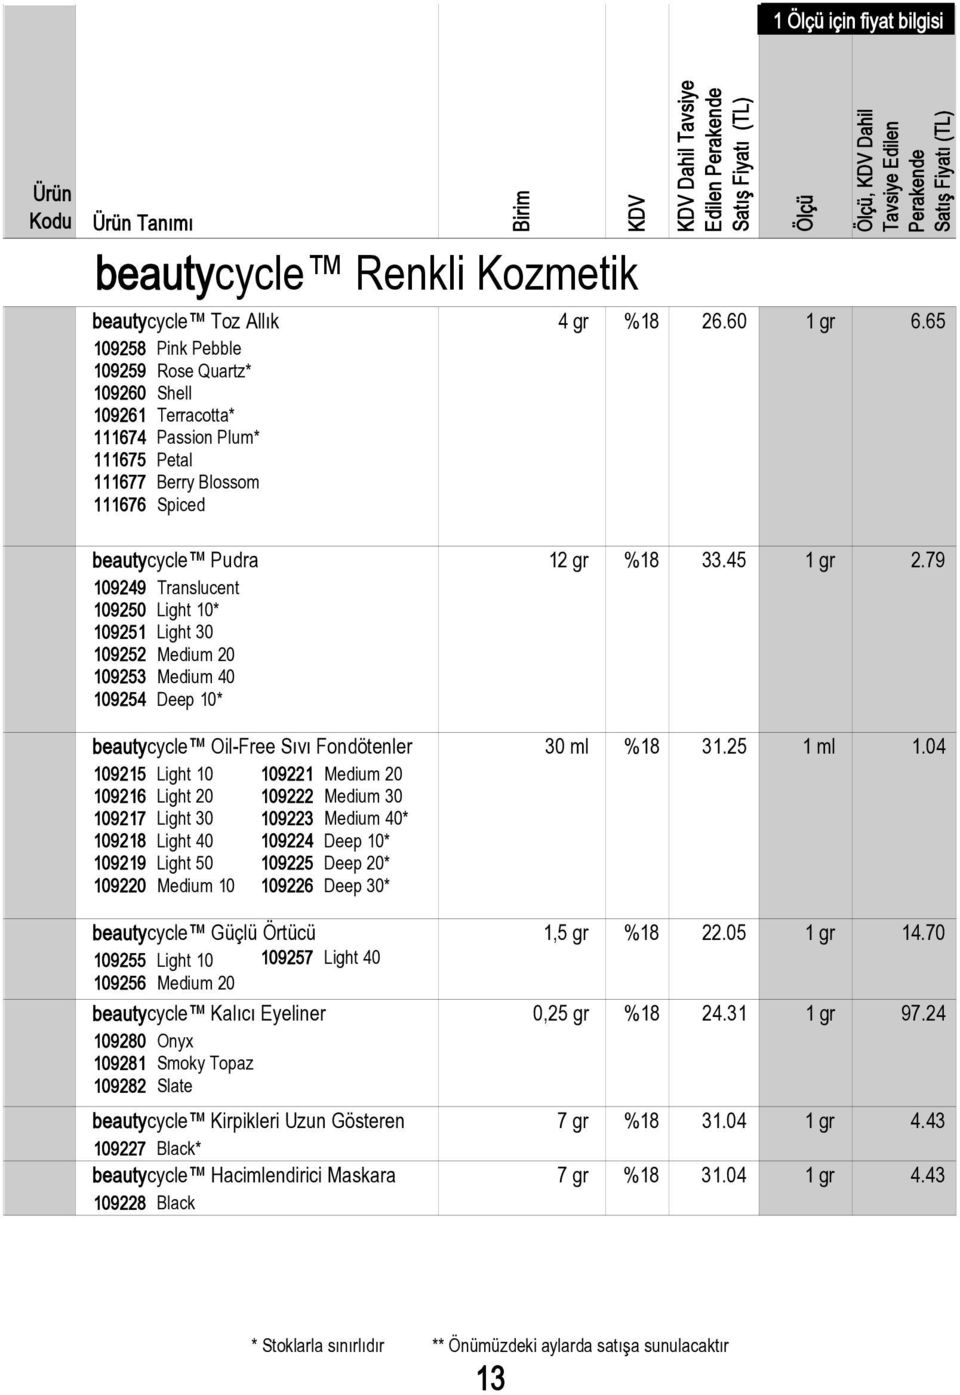 79 109249 Translucent 109250 Light 10* 109251 Light 30 109252 Medium 20 109253 Medium 40 109254 Deep 10* beautycycle Oil-Free Sıvı Fondötenler 30 ml %18 31.25 1 ml 1.